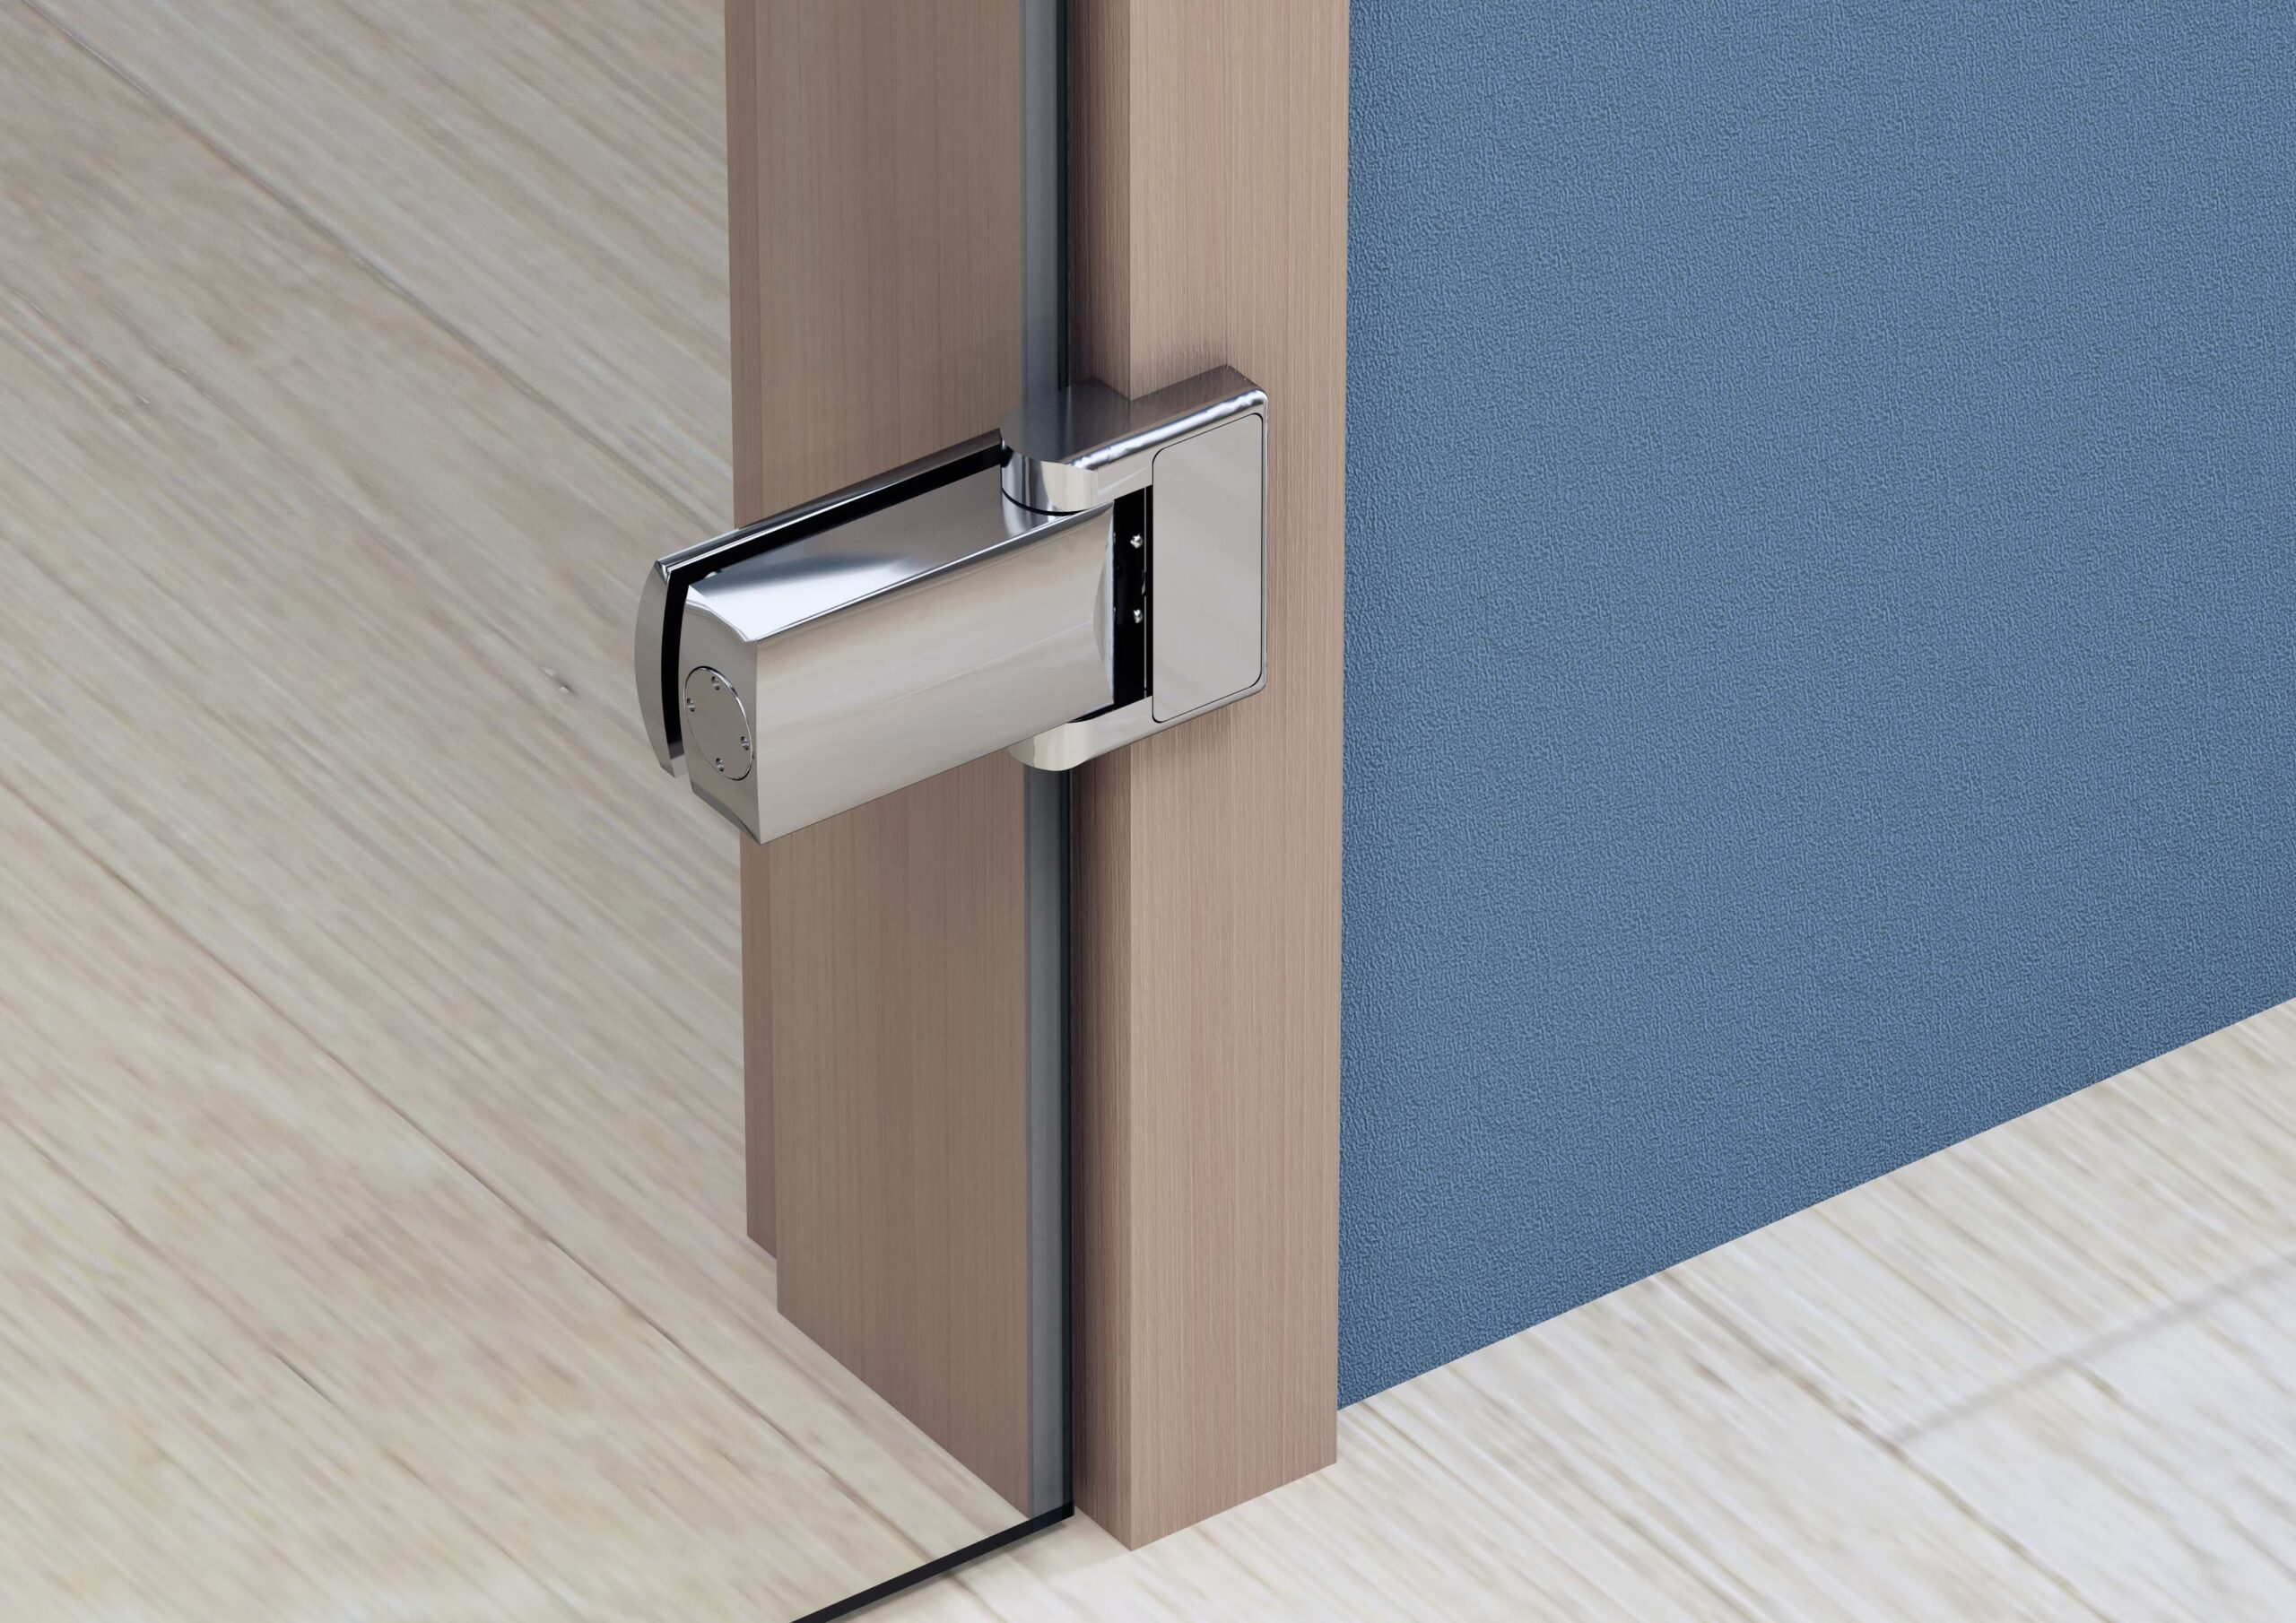 8060WD Hinge for wooden jamb